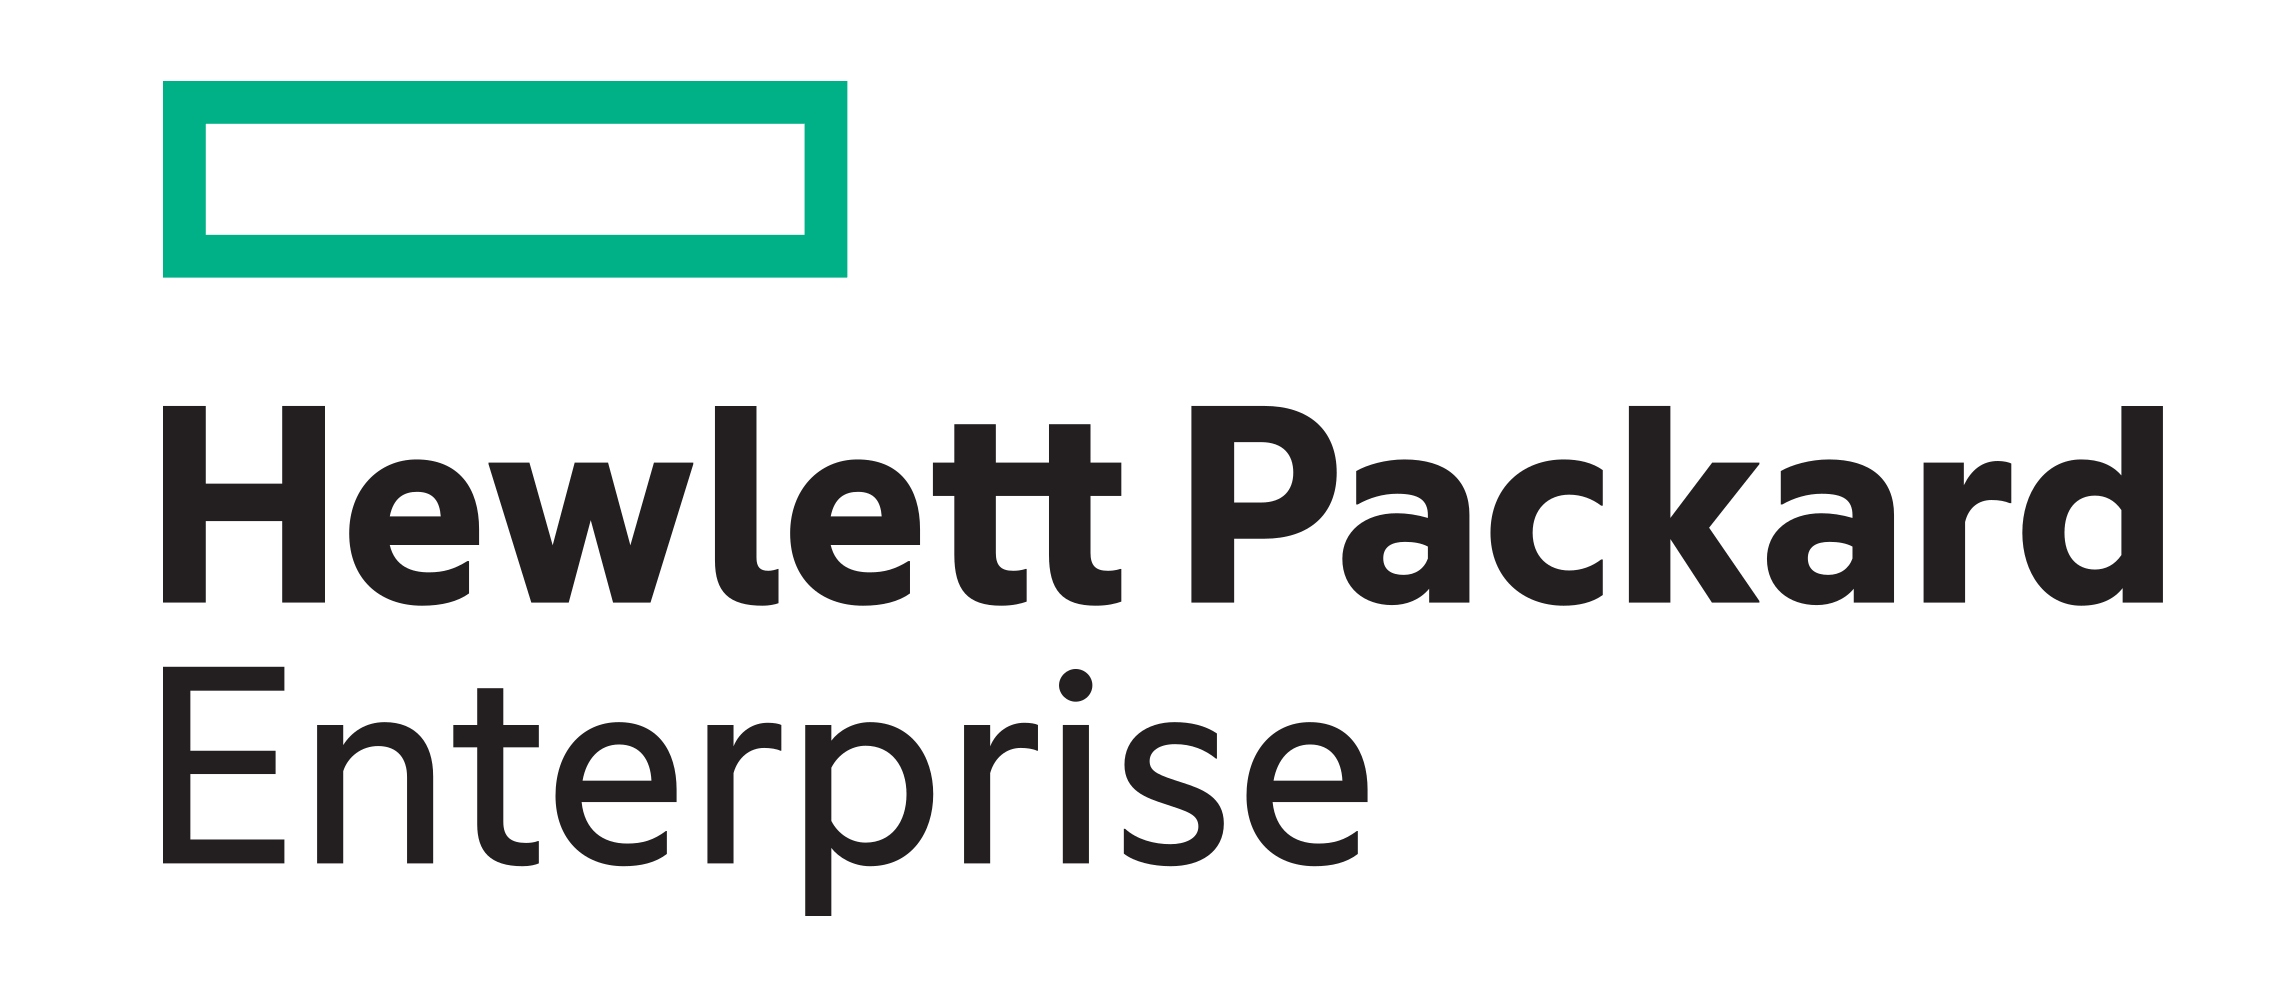 Hewlett_Packard_Enterprise_